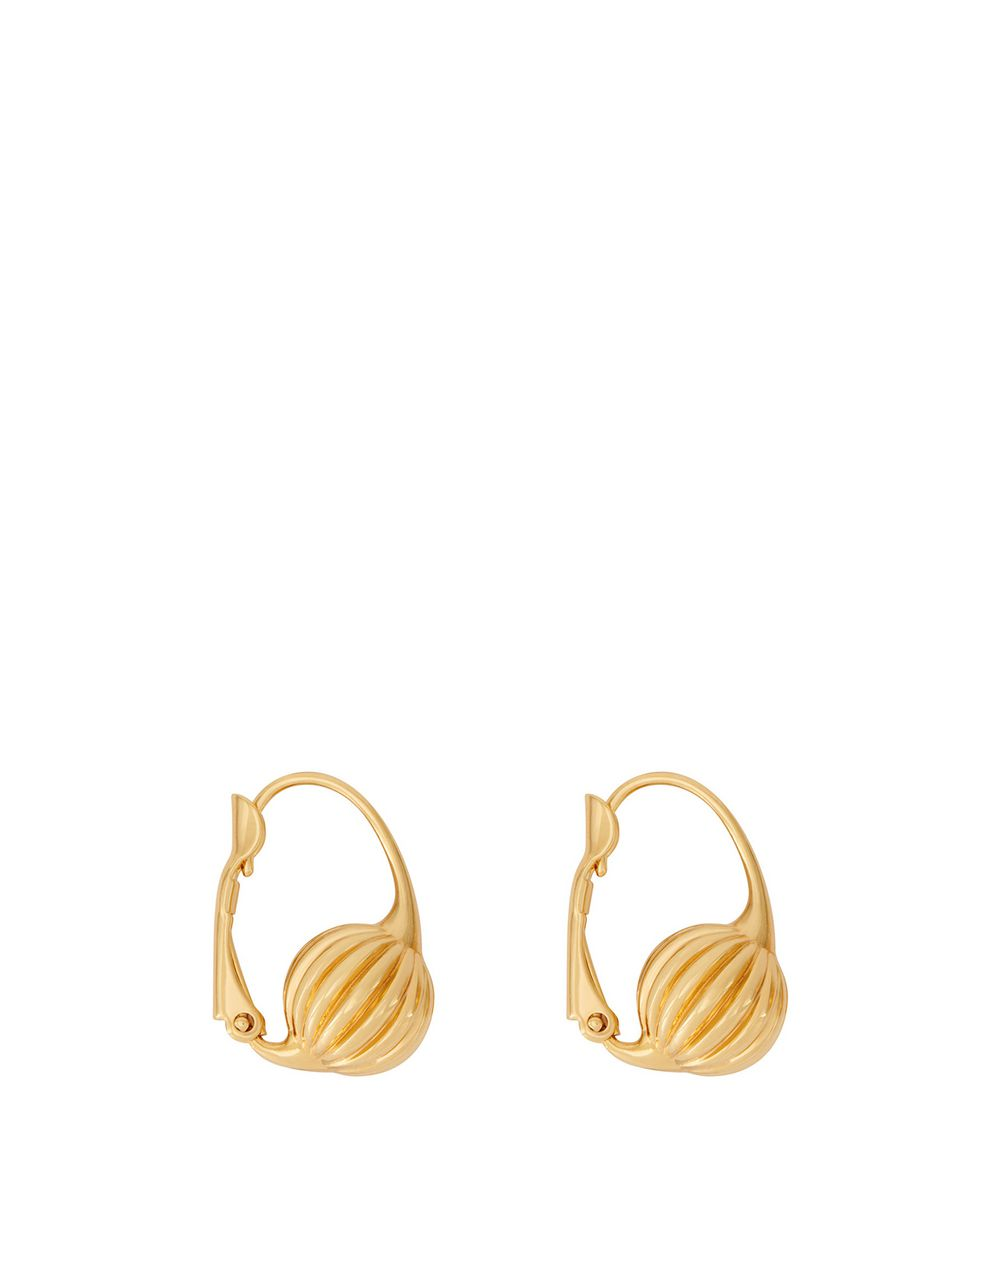 ARPÈGE SLEEPER EARRINGS - Lanvin